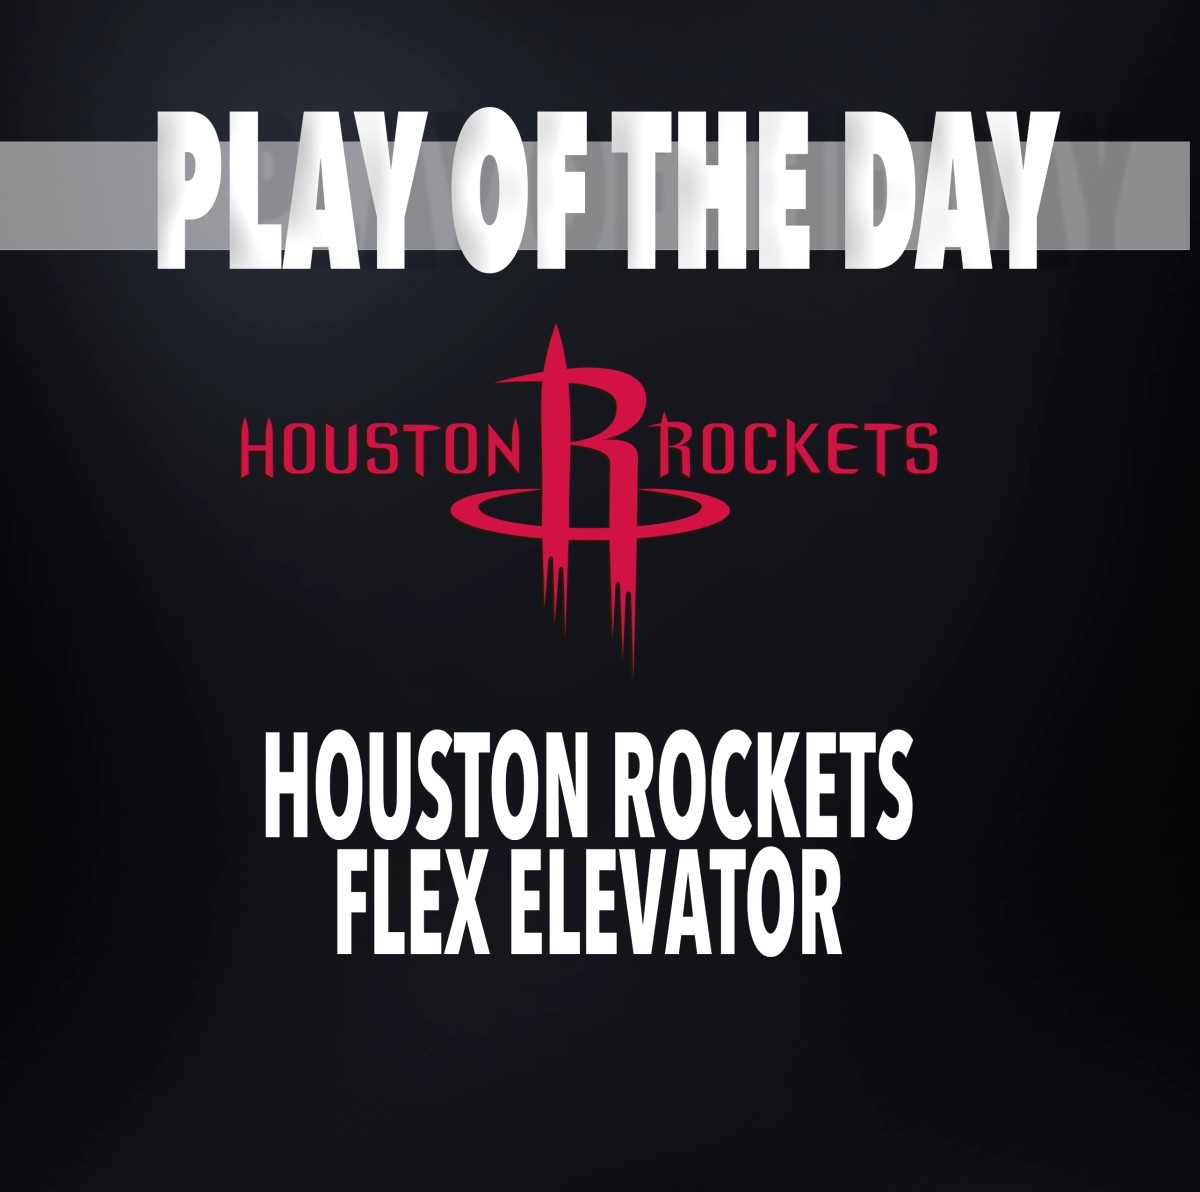 Houston Rockets | Man Offense - Horns - Flex - Elevator